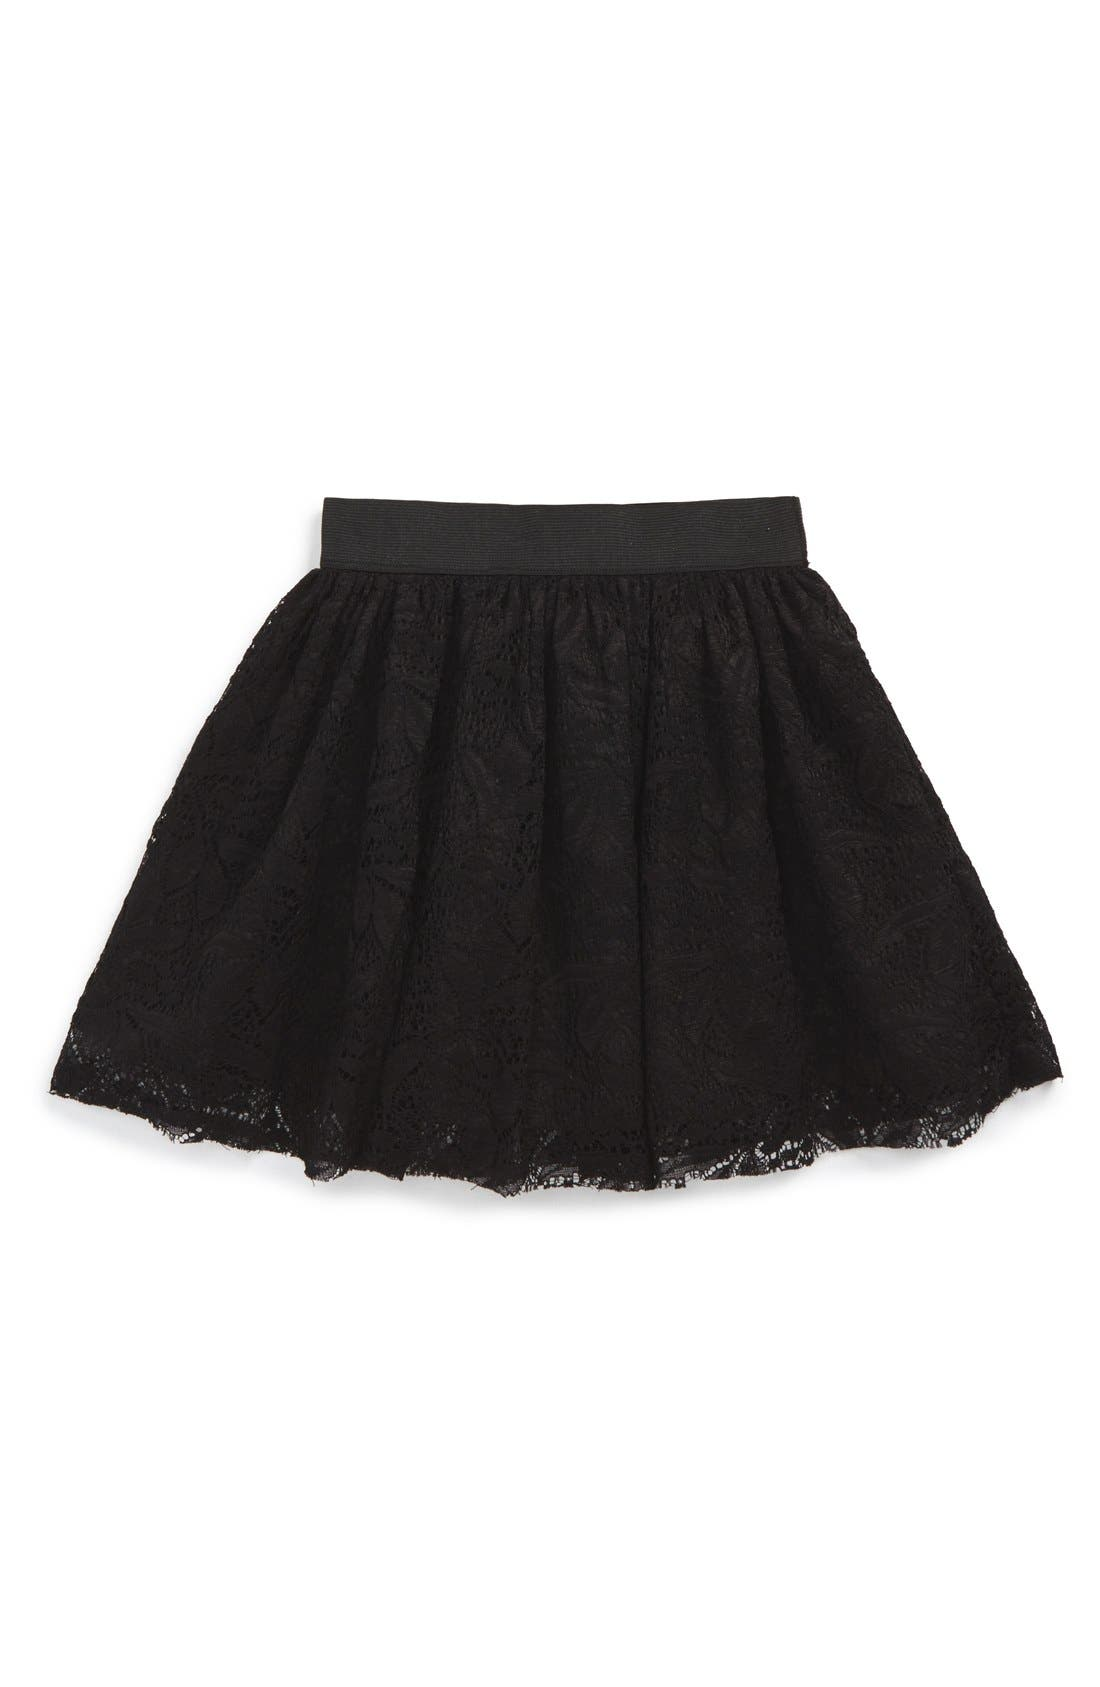 Alternate Image 1 Selected - Pippa & Julie Lace Skirt (Toddler Girls & Little Girls)